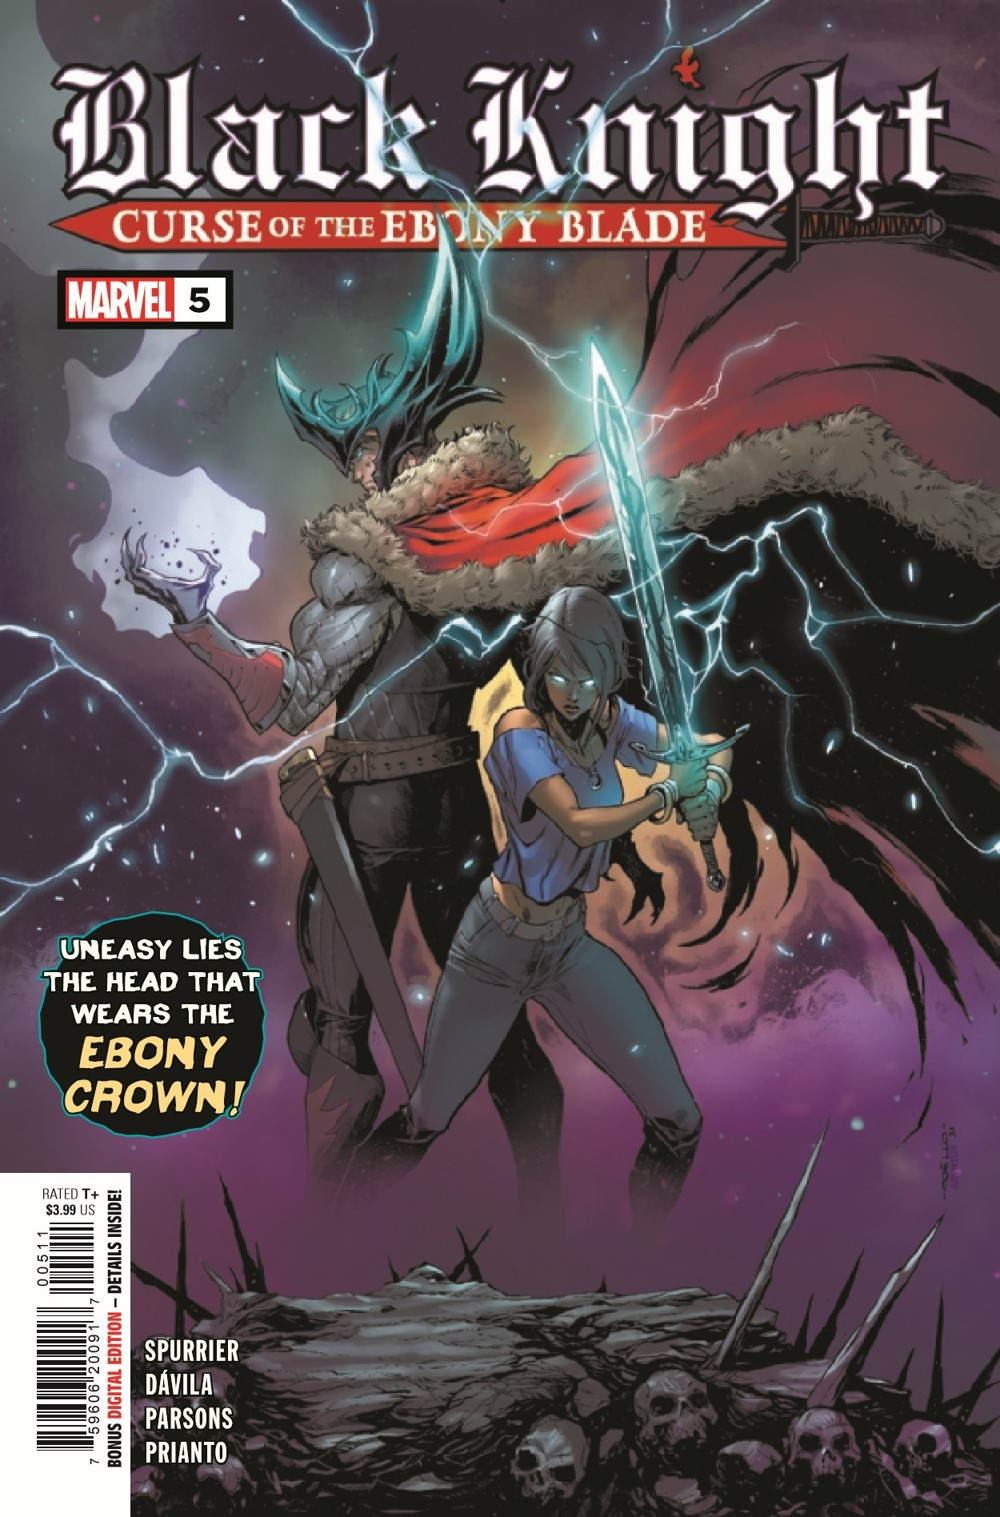 BLKKNGHTCURSE2021005_Preview-1 ComicList Previews: BLACK KNIGHT CURSE OF THE EBONY BLADE #5 (OF 5)